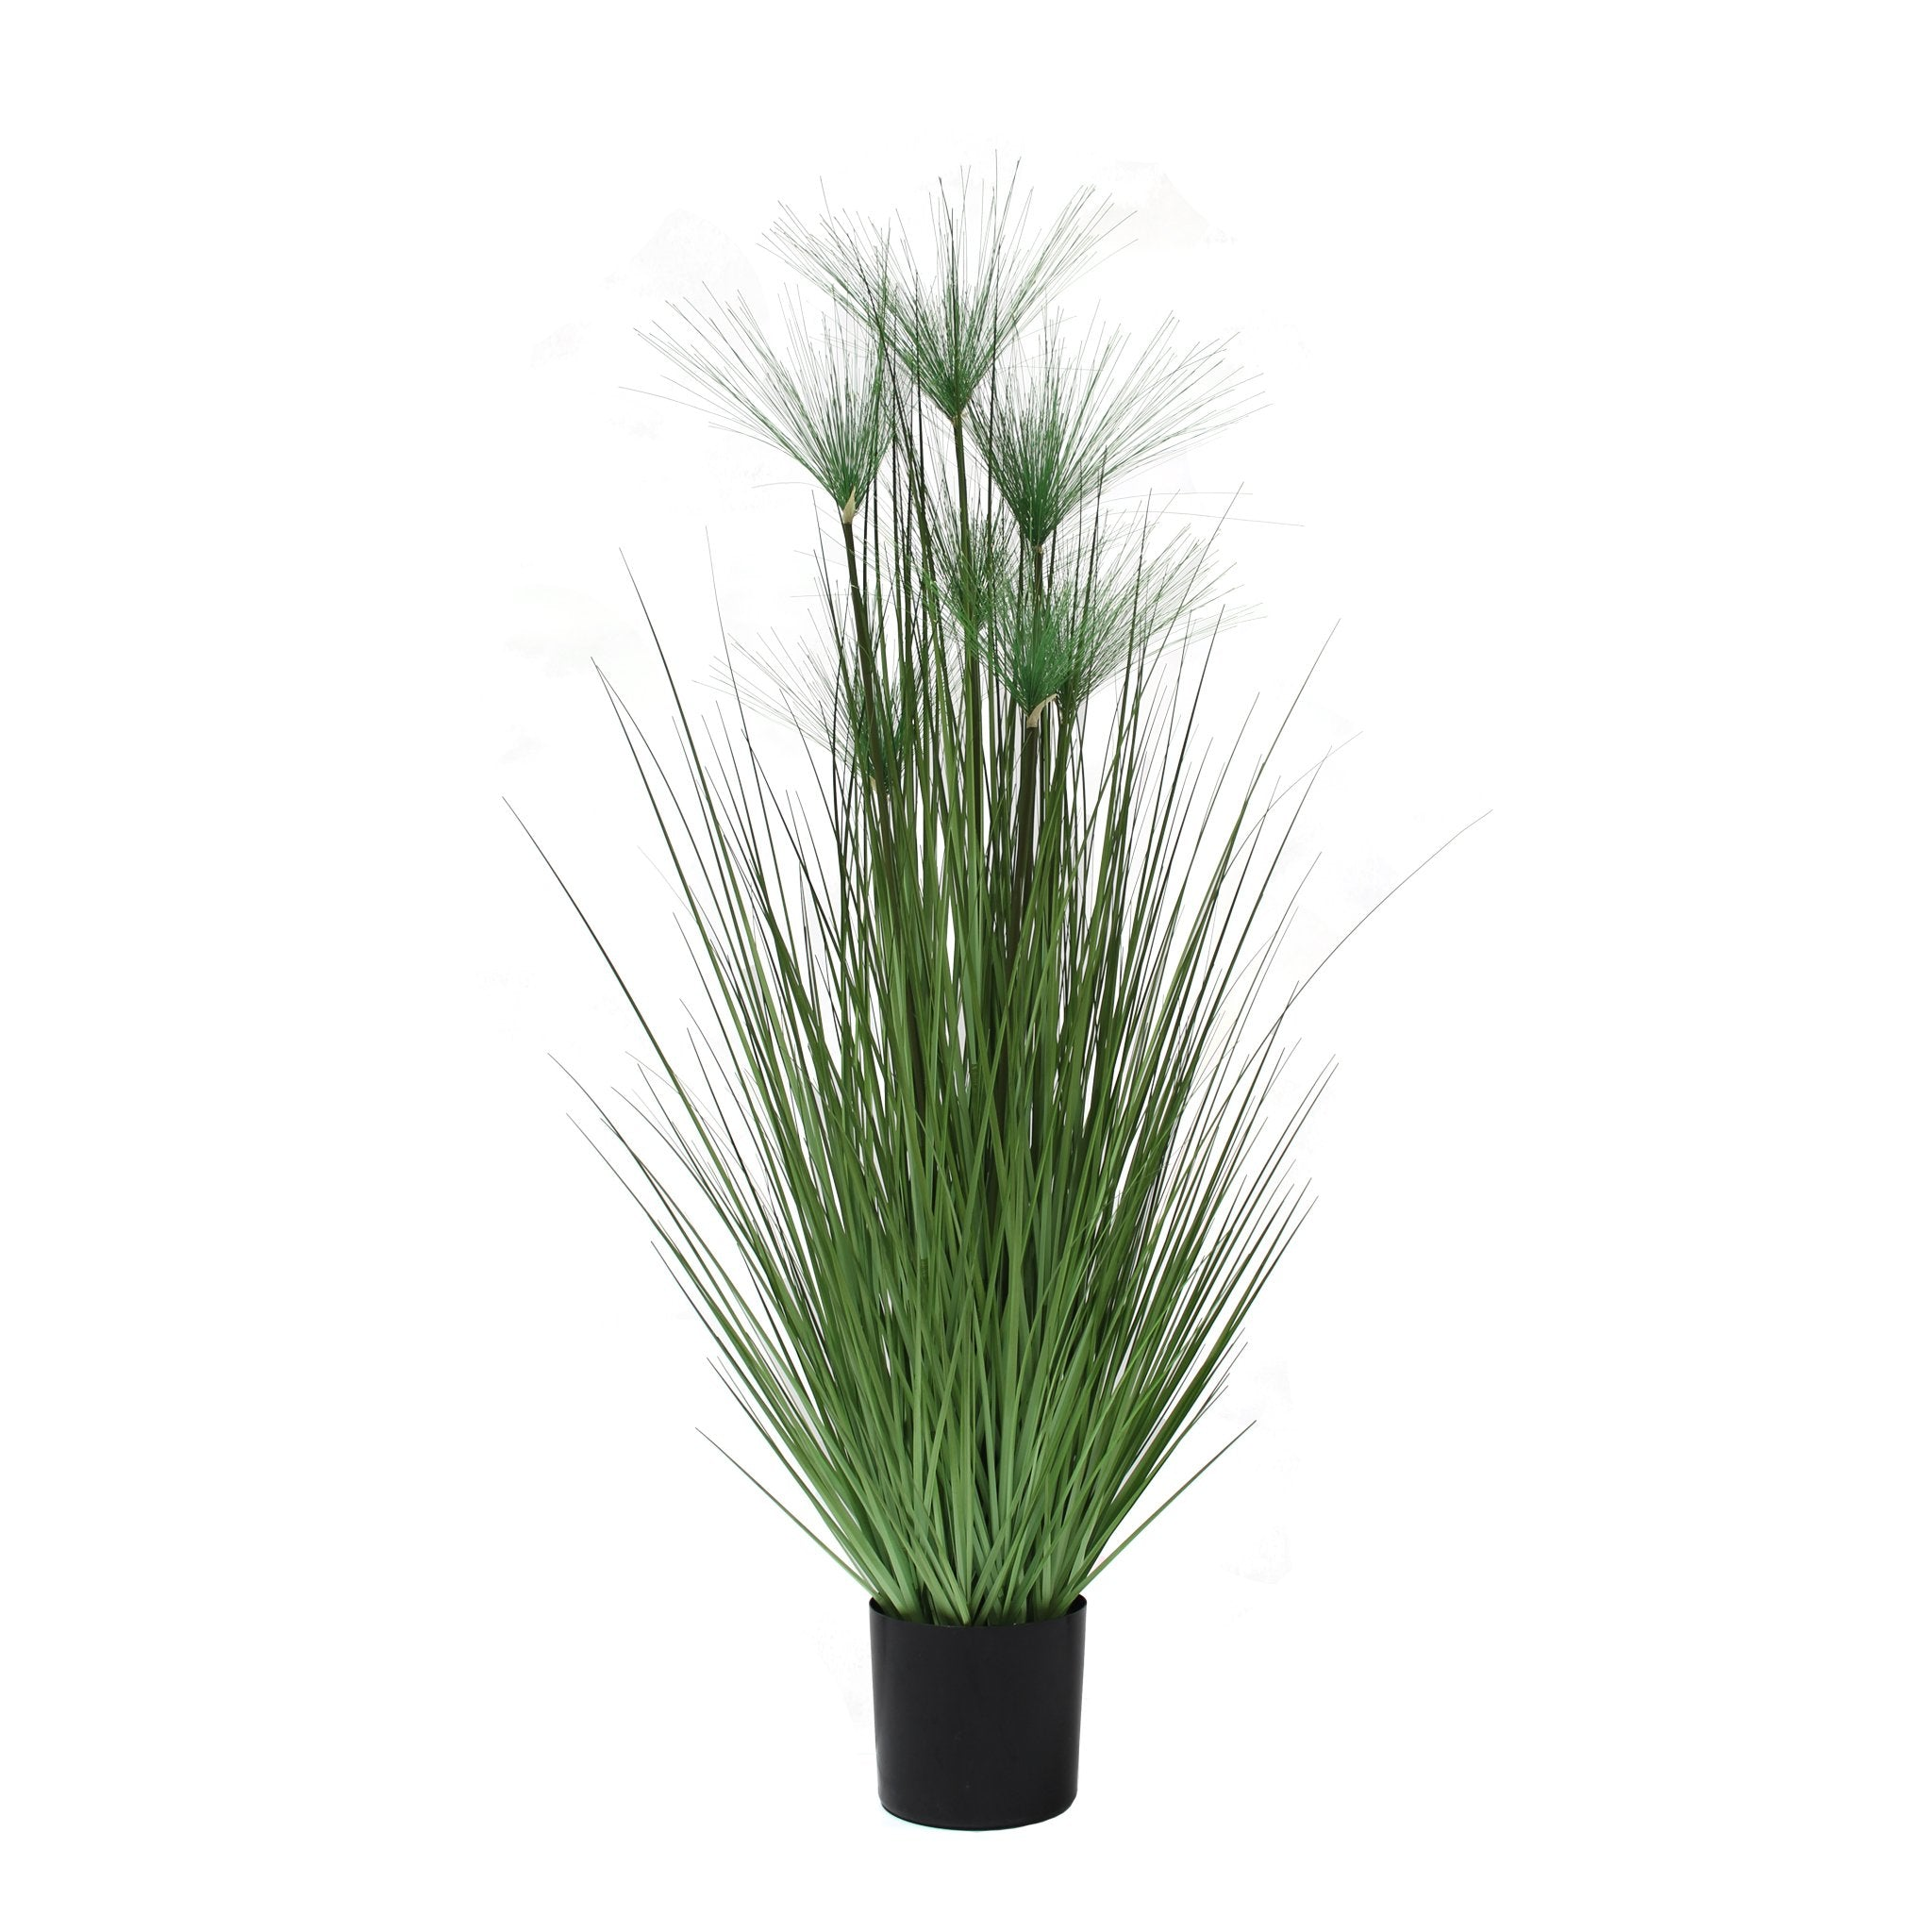 artificial grass plant tall faux grass papyrus grass 5'